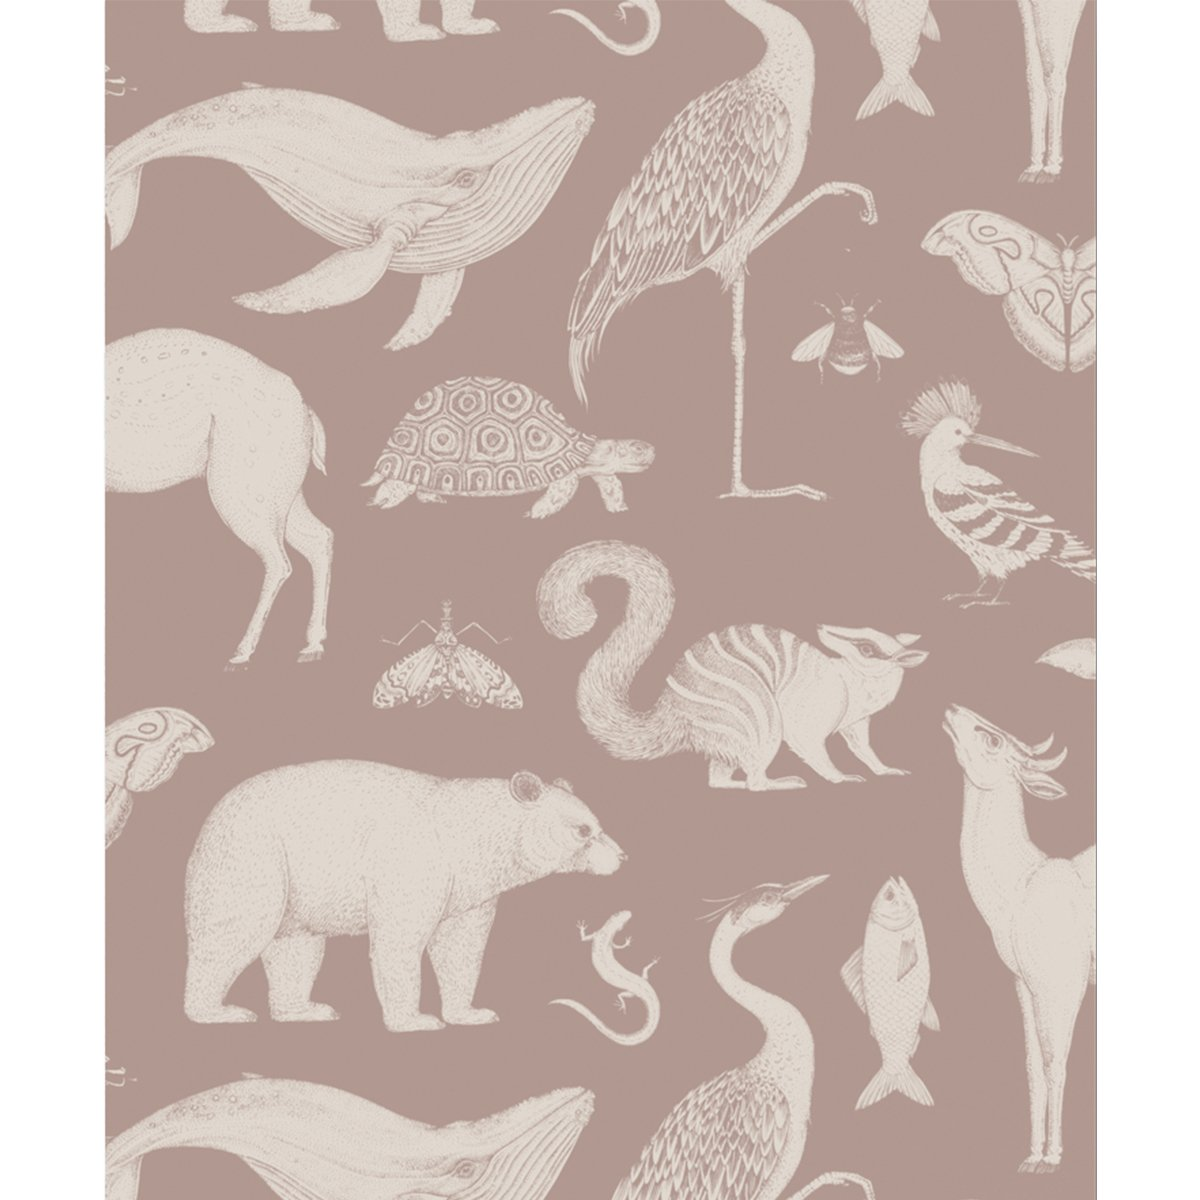 Ferm Living Katie Scott Animals Behang - Dusty Rose